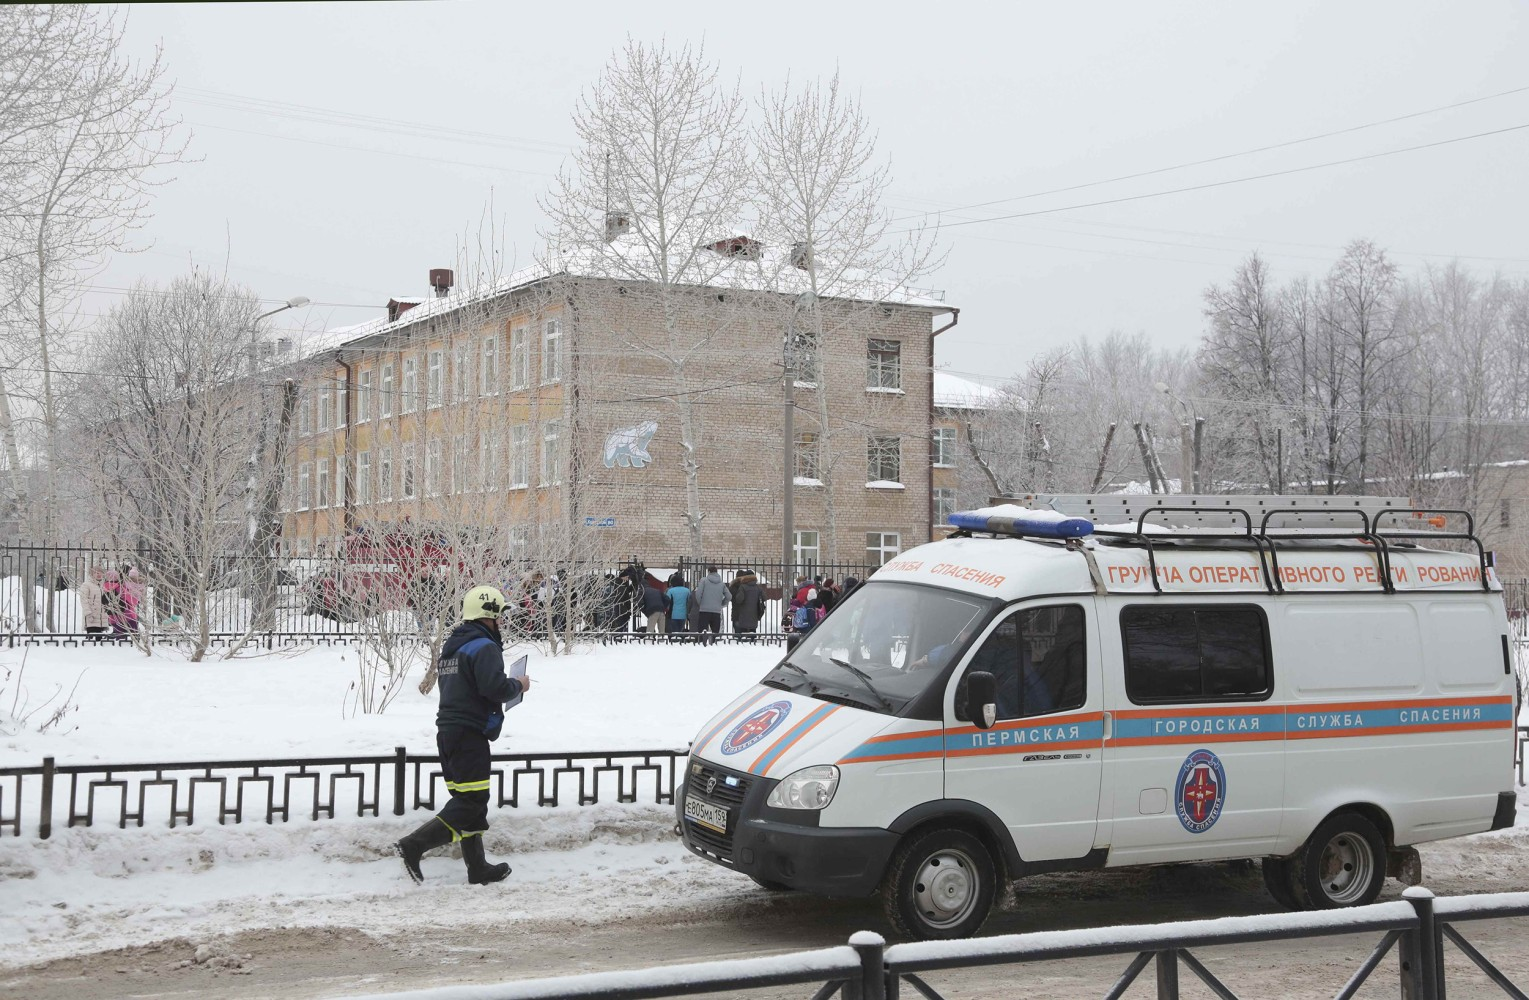 Bloody fight in Russia's Perm school: 13 injured